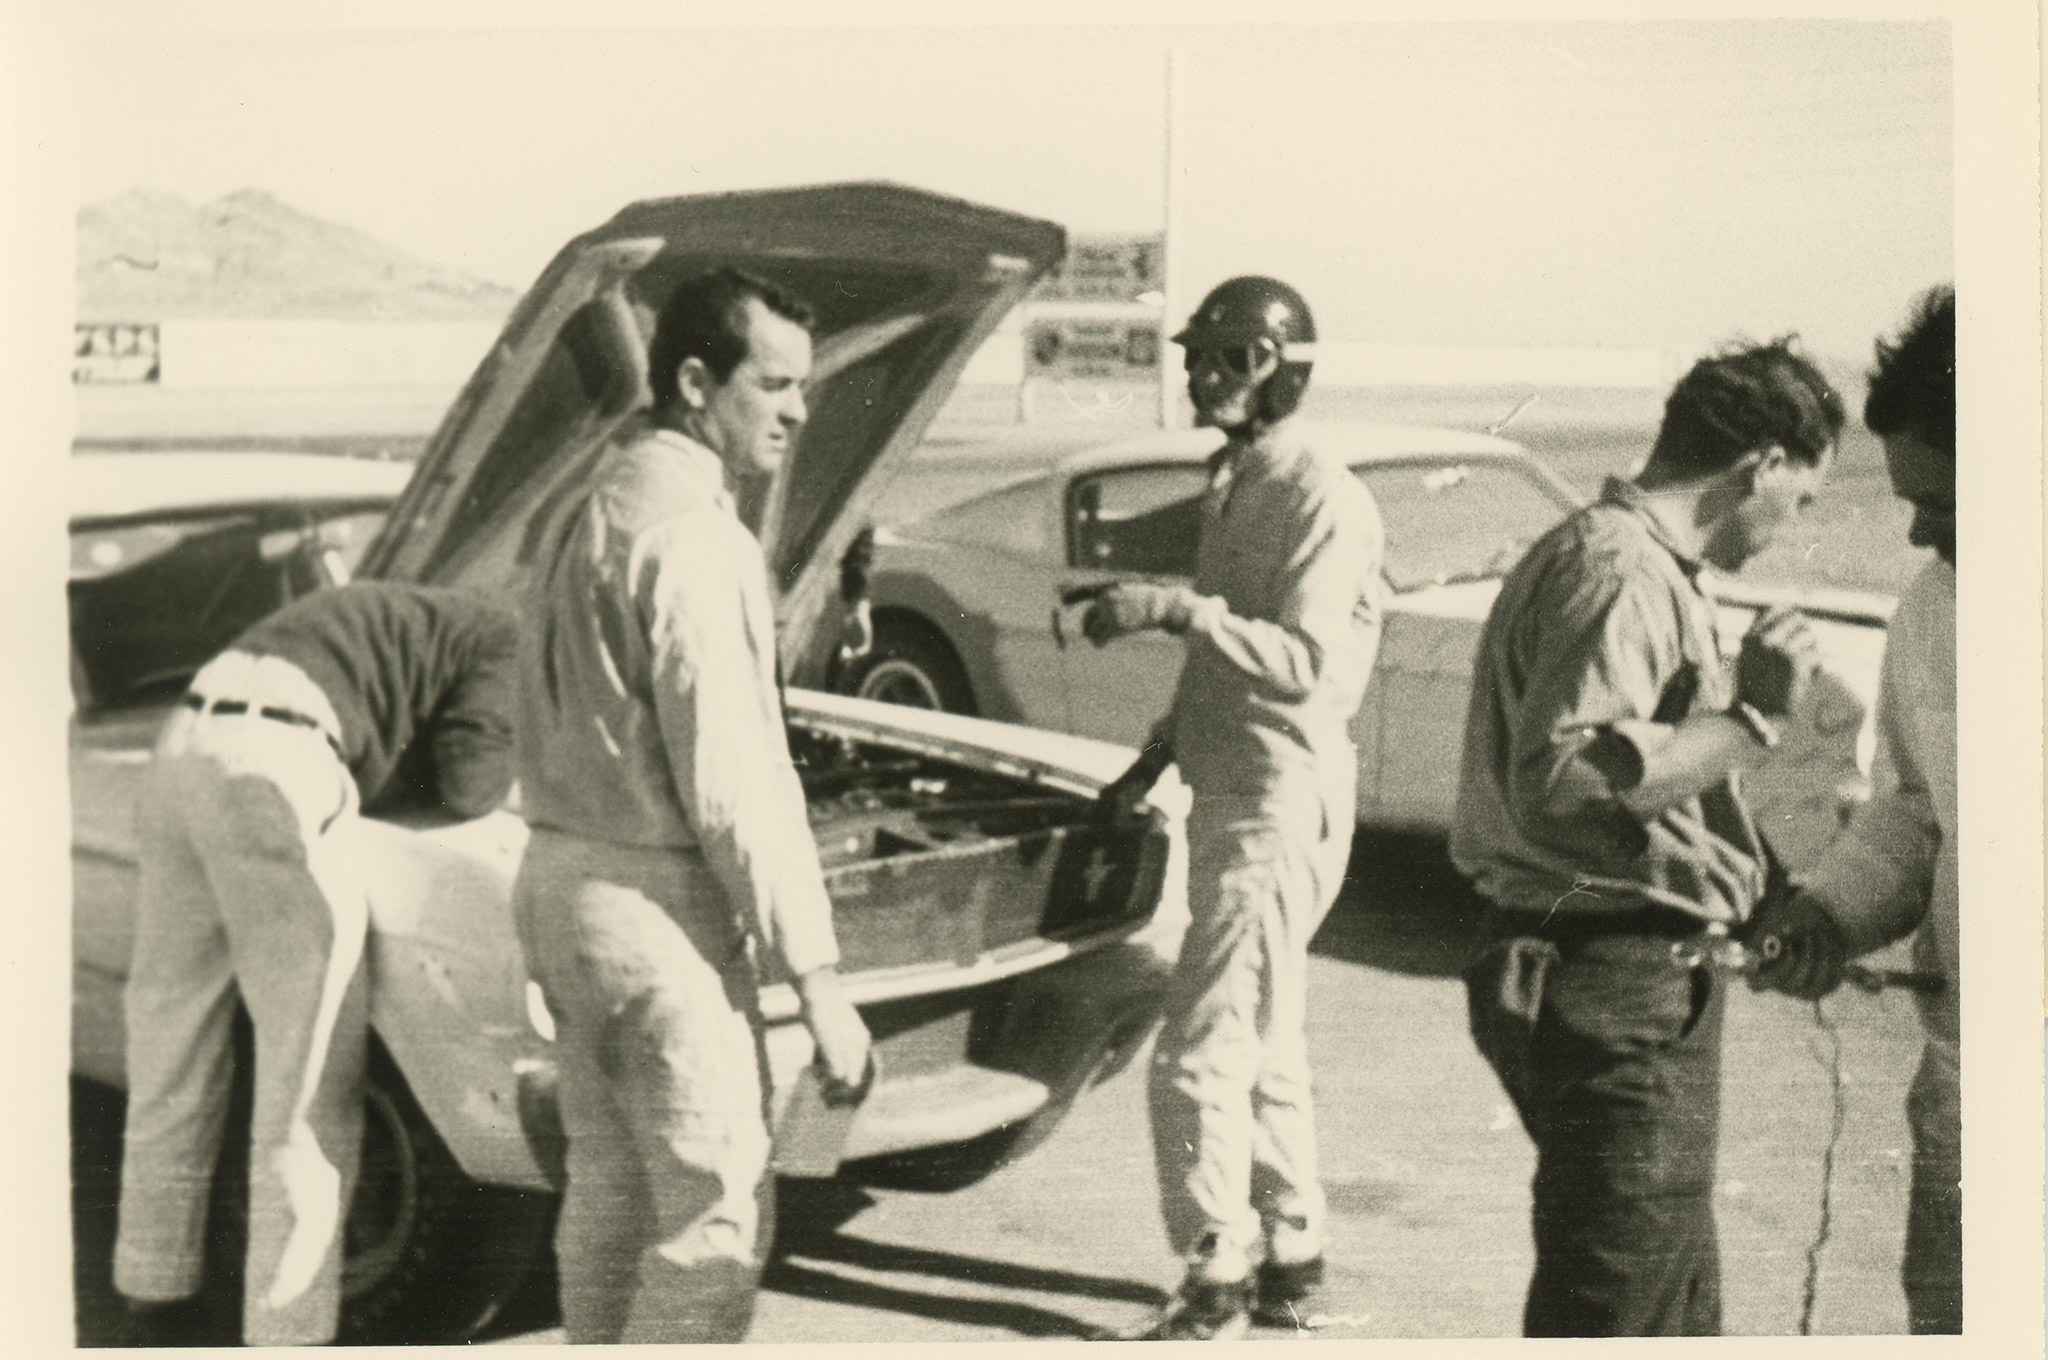 One month prior to the Green Valley, TX race, in January of 1965, Bob Bondurant and Ken Miles track tested the first two 1965 Shelby Mustangs at Willow Springs in California.  5R002 is in background, and 5R001, is in the foreground, with Bondurant  looking to his right and his head centered in the car hood, and Miles on his right with the black helmet on.   (Bob Bondurant photo)